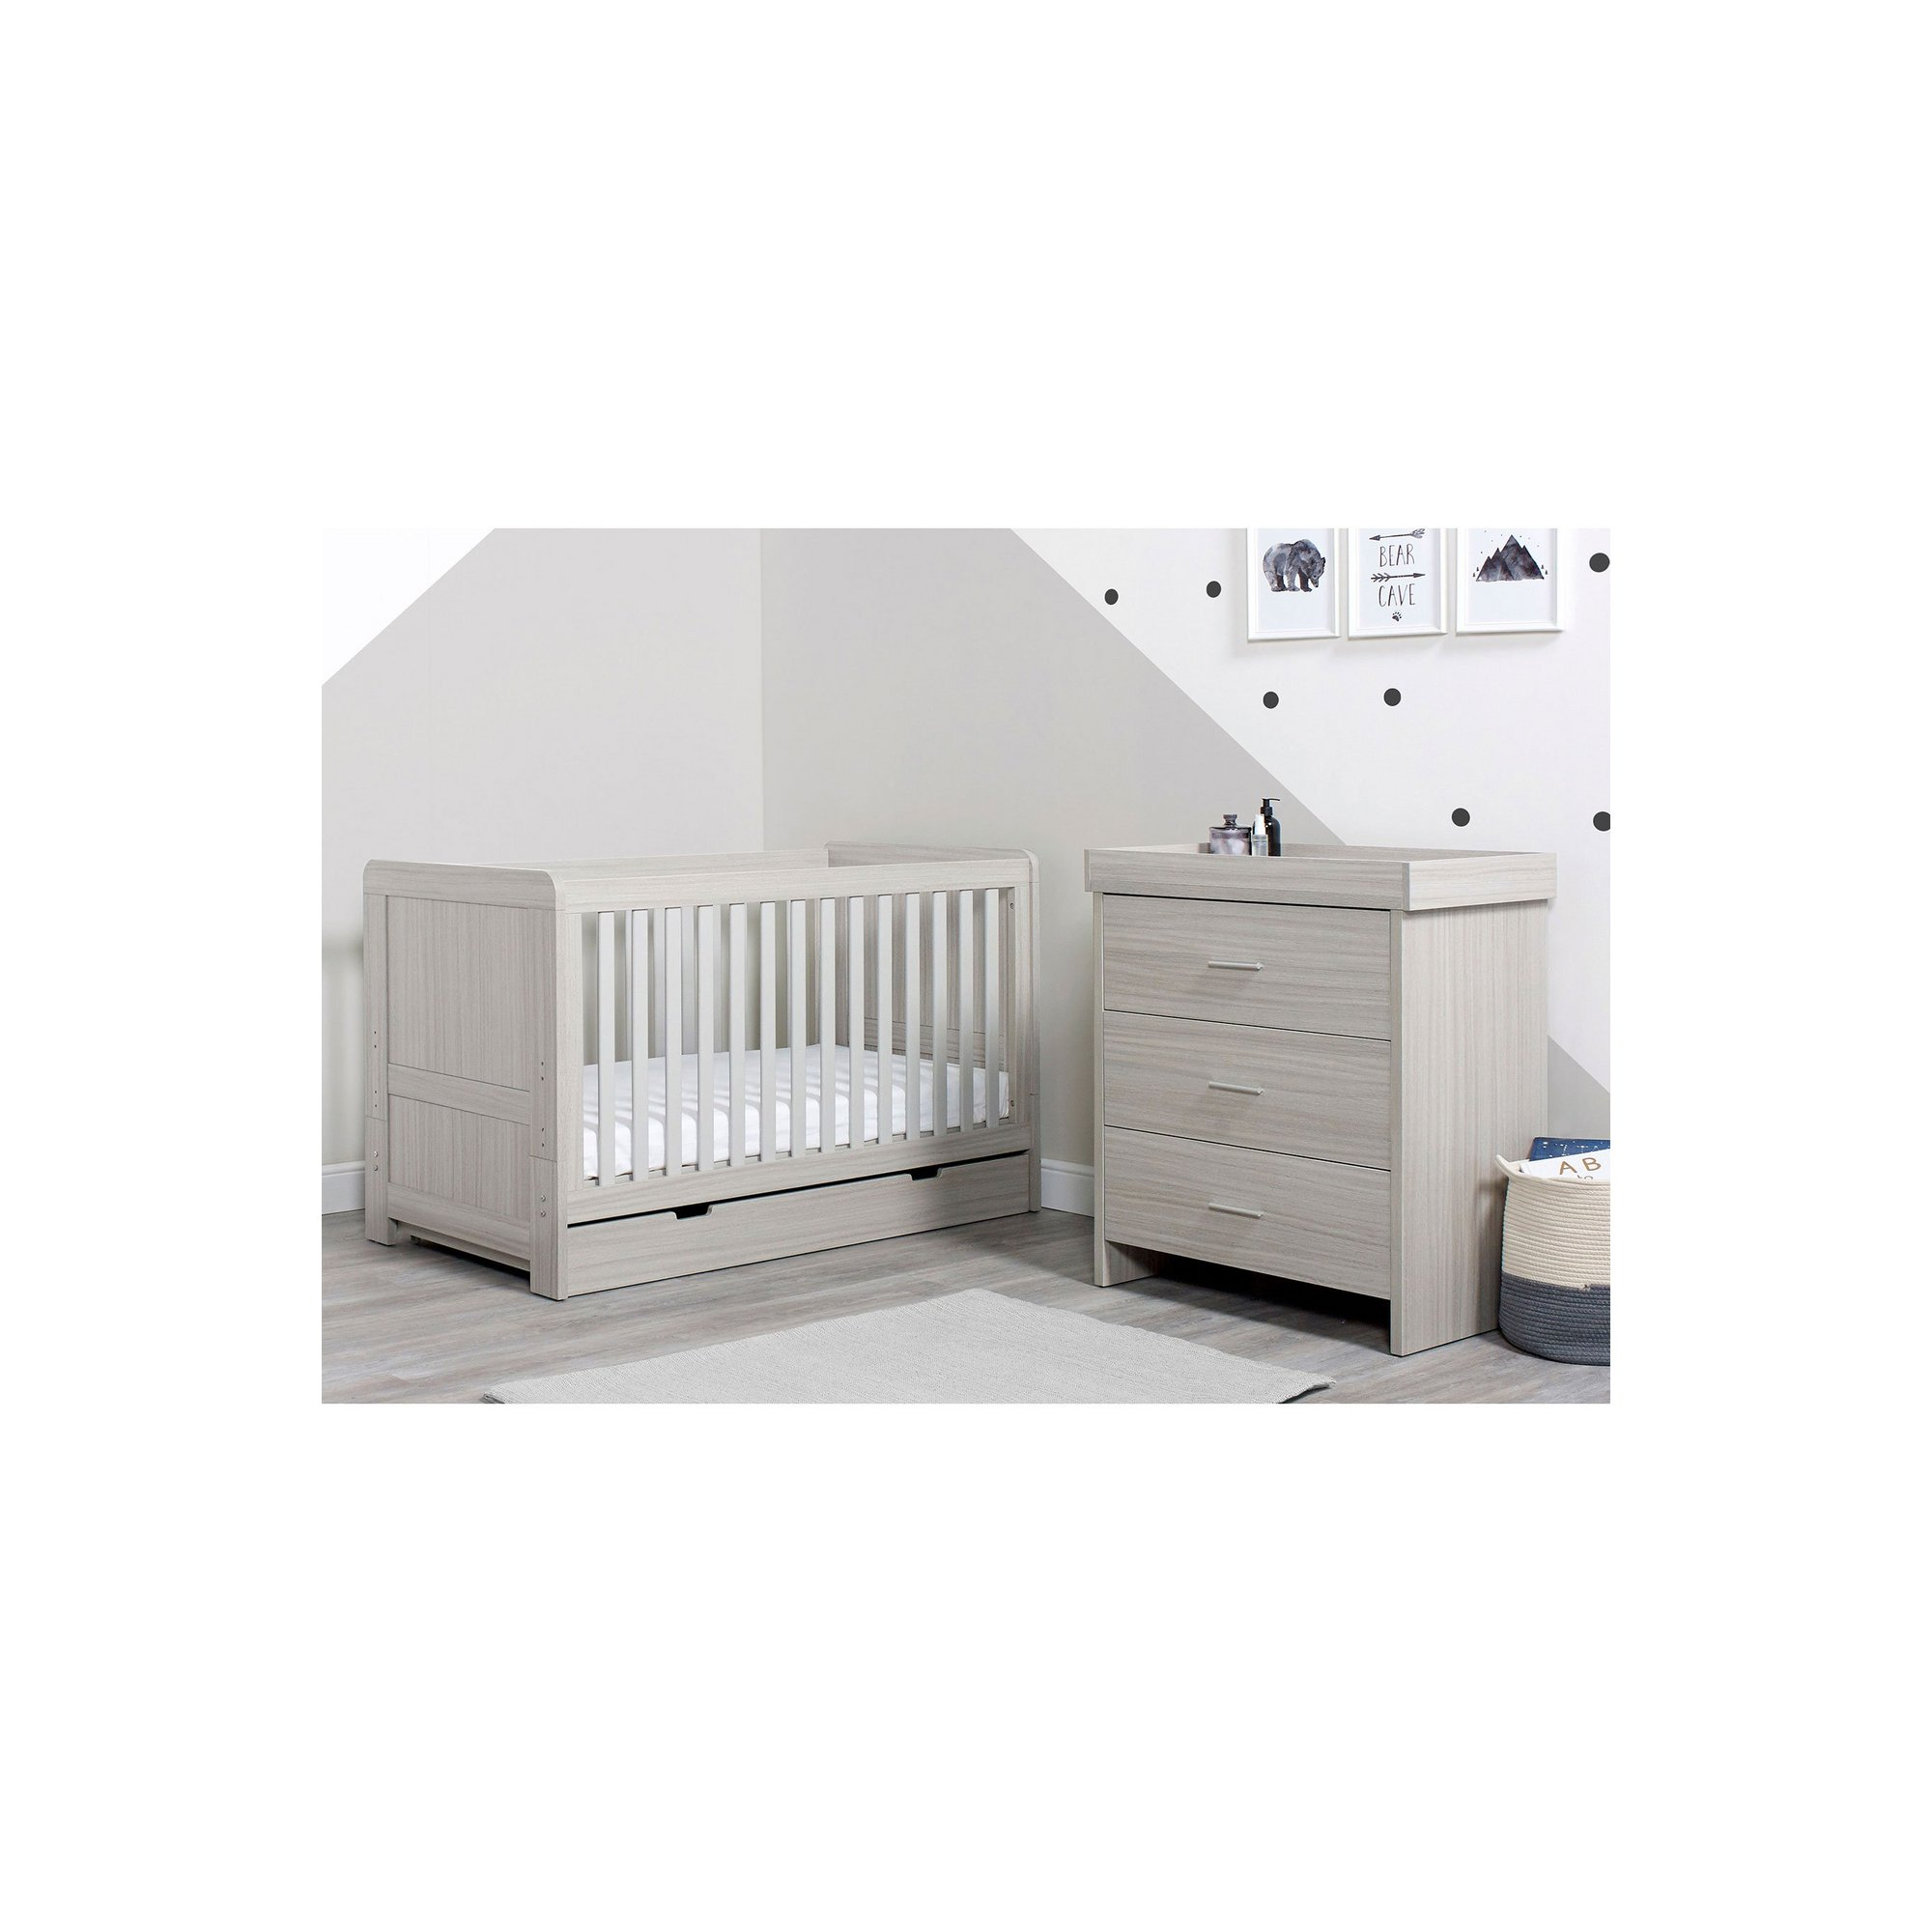 Image of Ickle Bubba Ash Grey Pembrey Cot Bed&#44 Under Drawer and Changin...